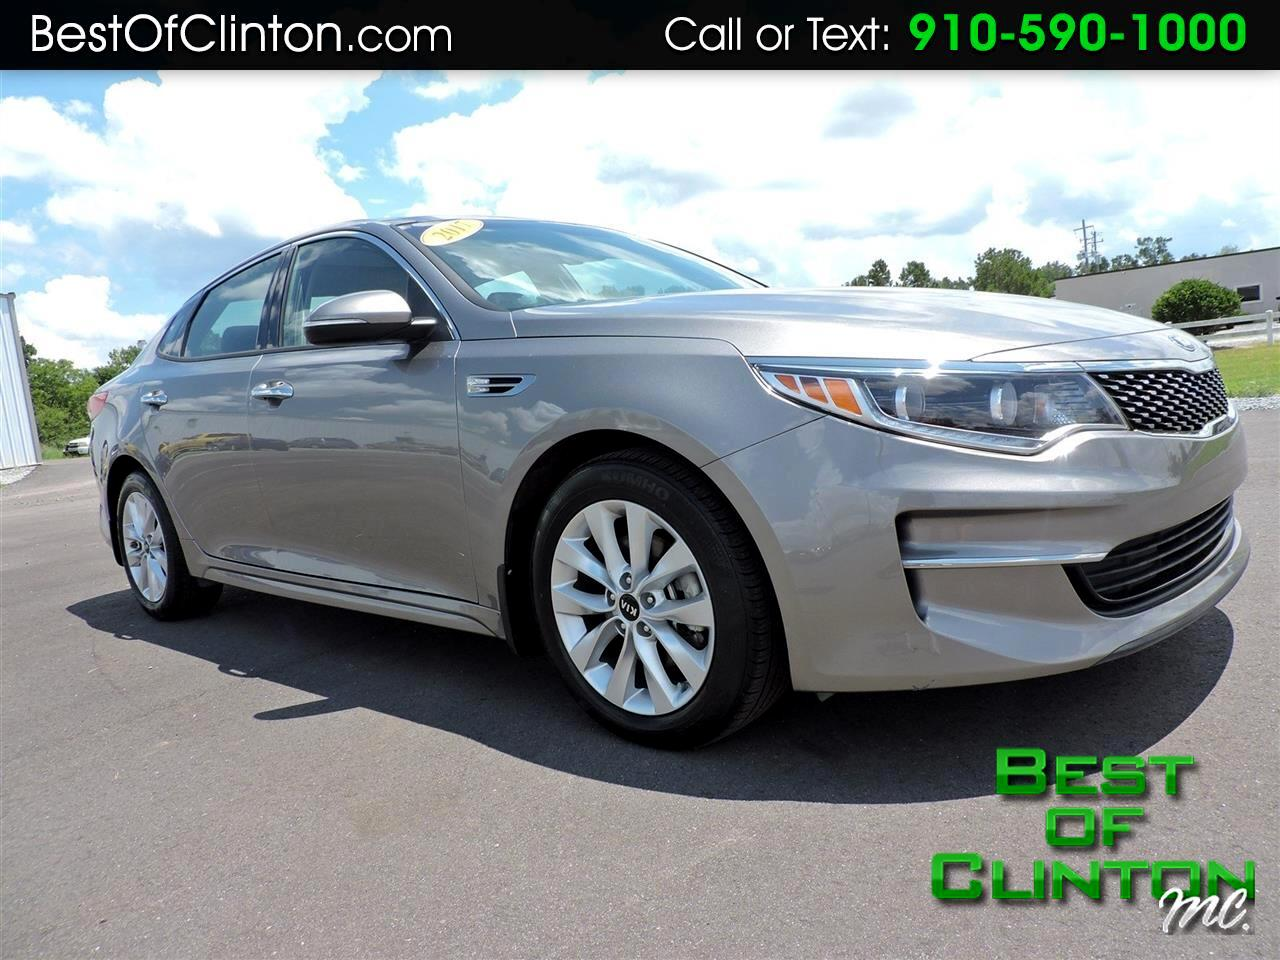 2017 Kia Optima EX Auto